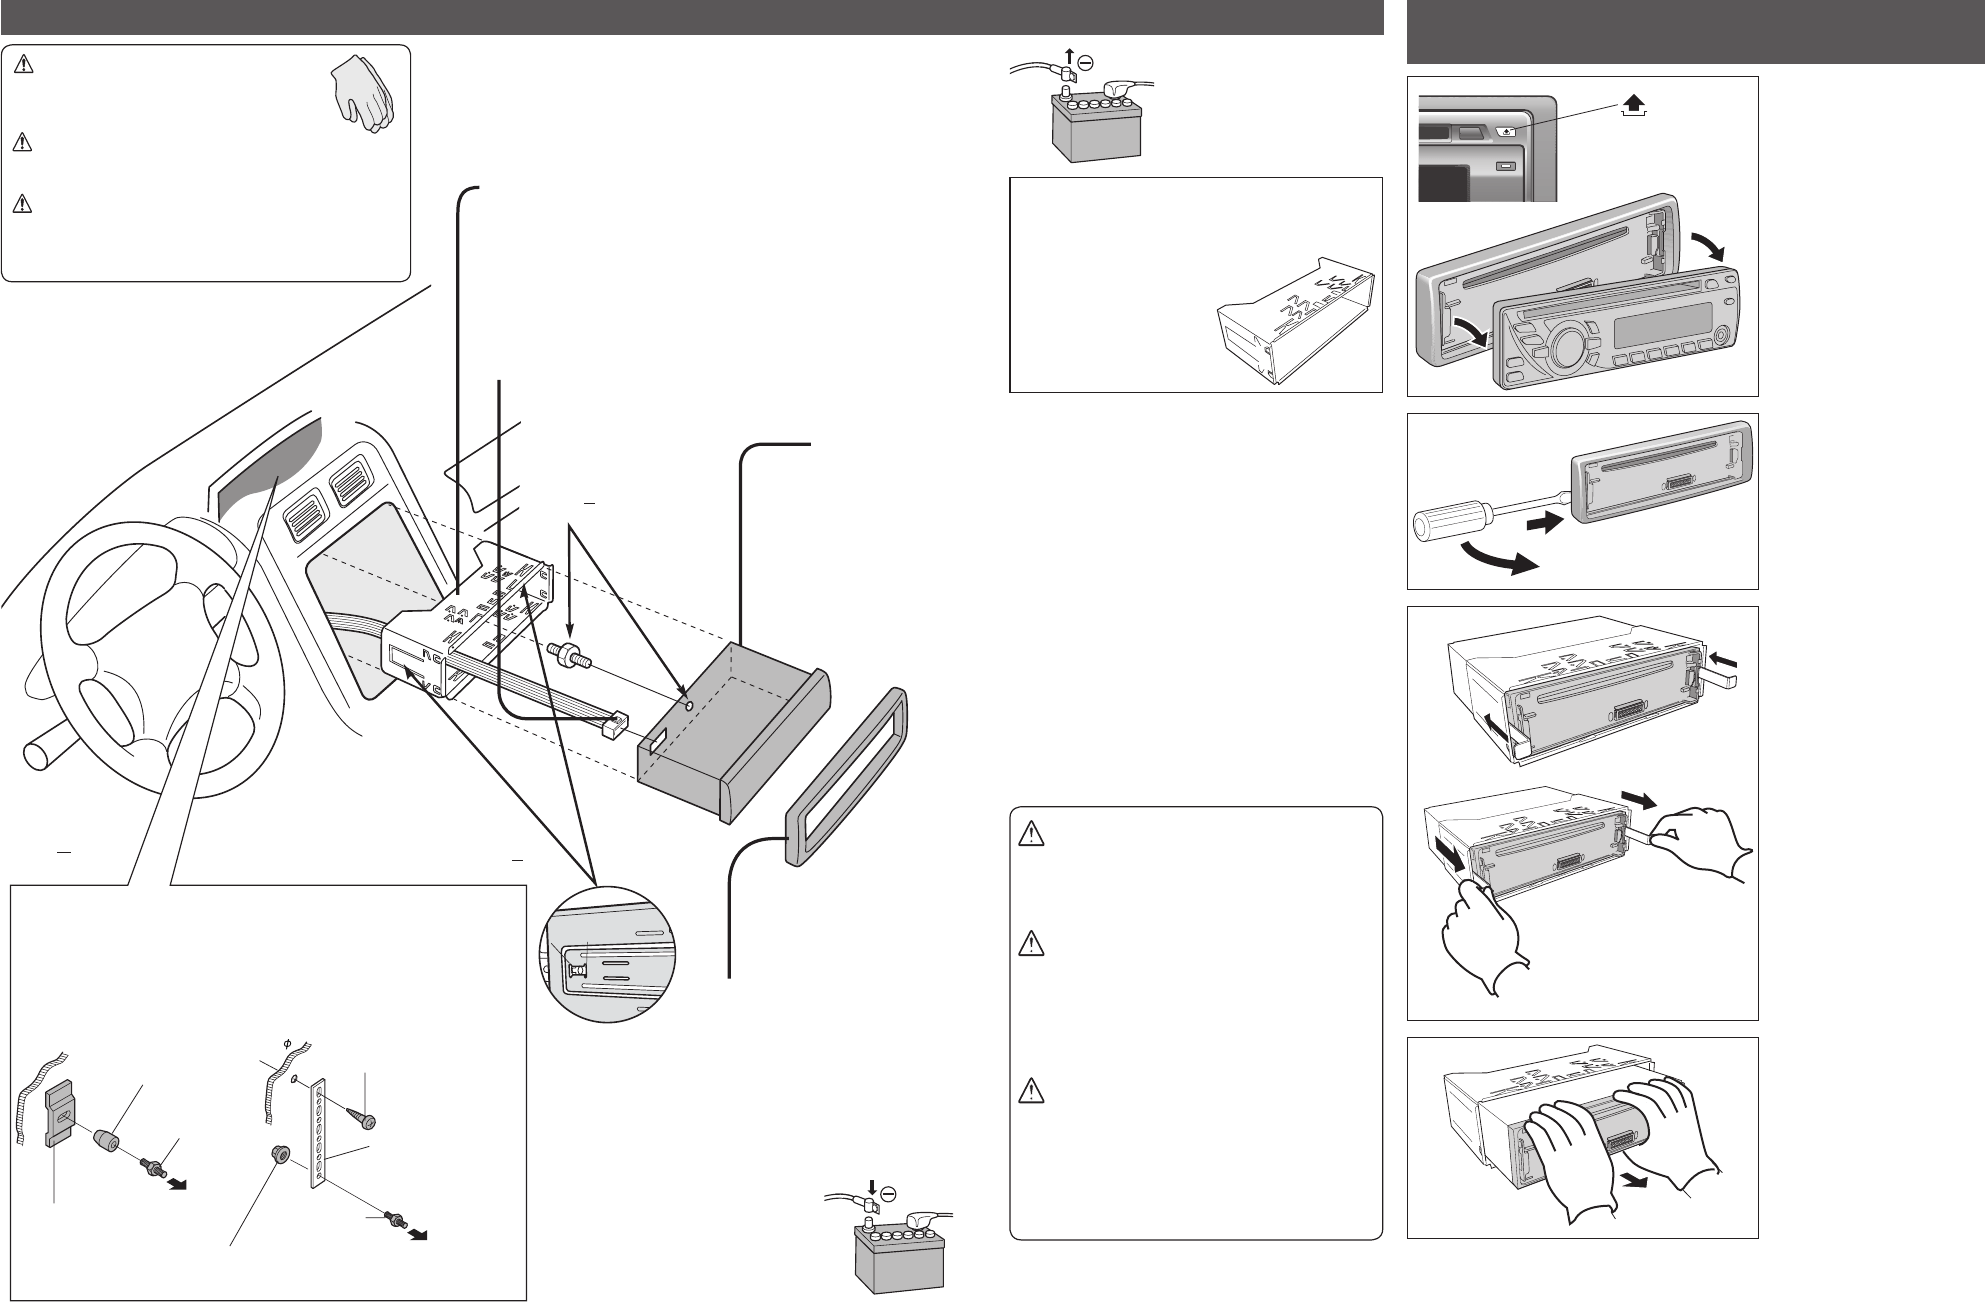 Page 22 of Panasonic Car Stereo System C1305L User Guide